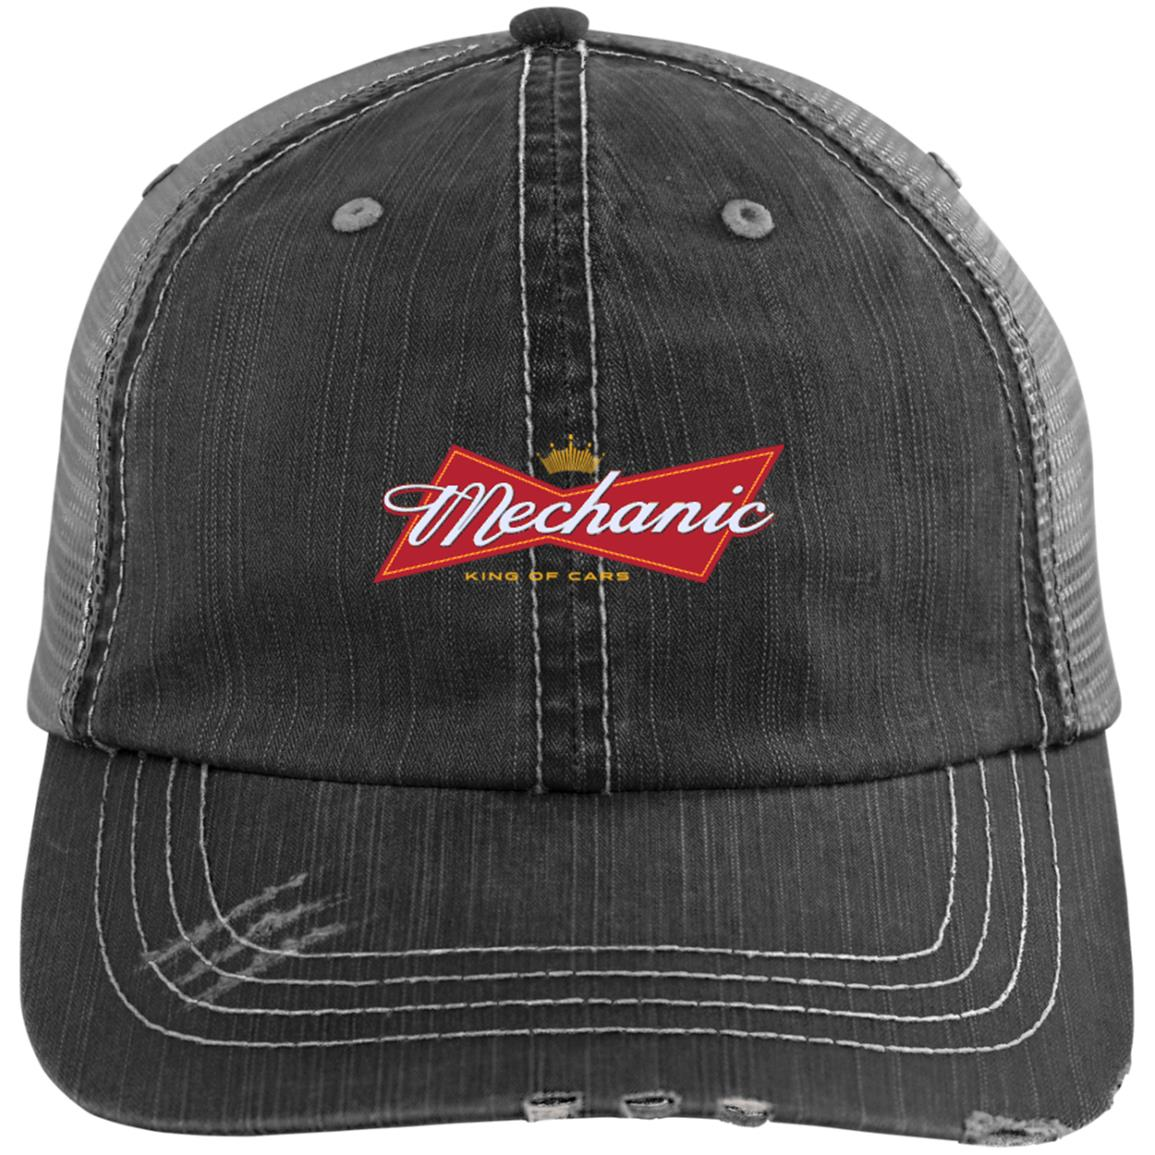 Mechanic King of Cars Trucker Cap - mechanic bestseller